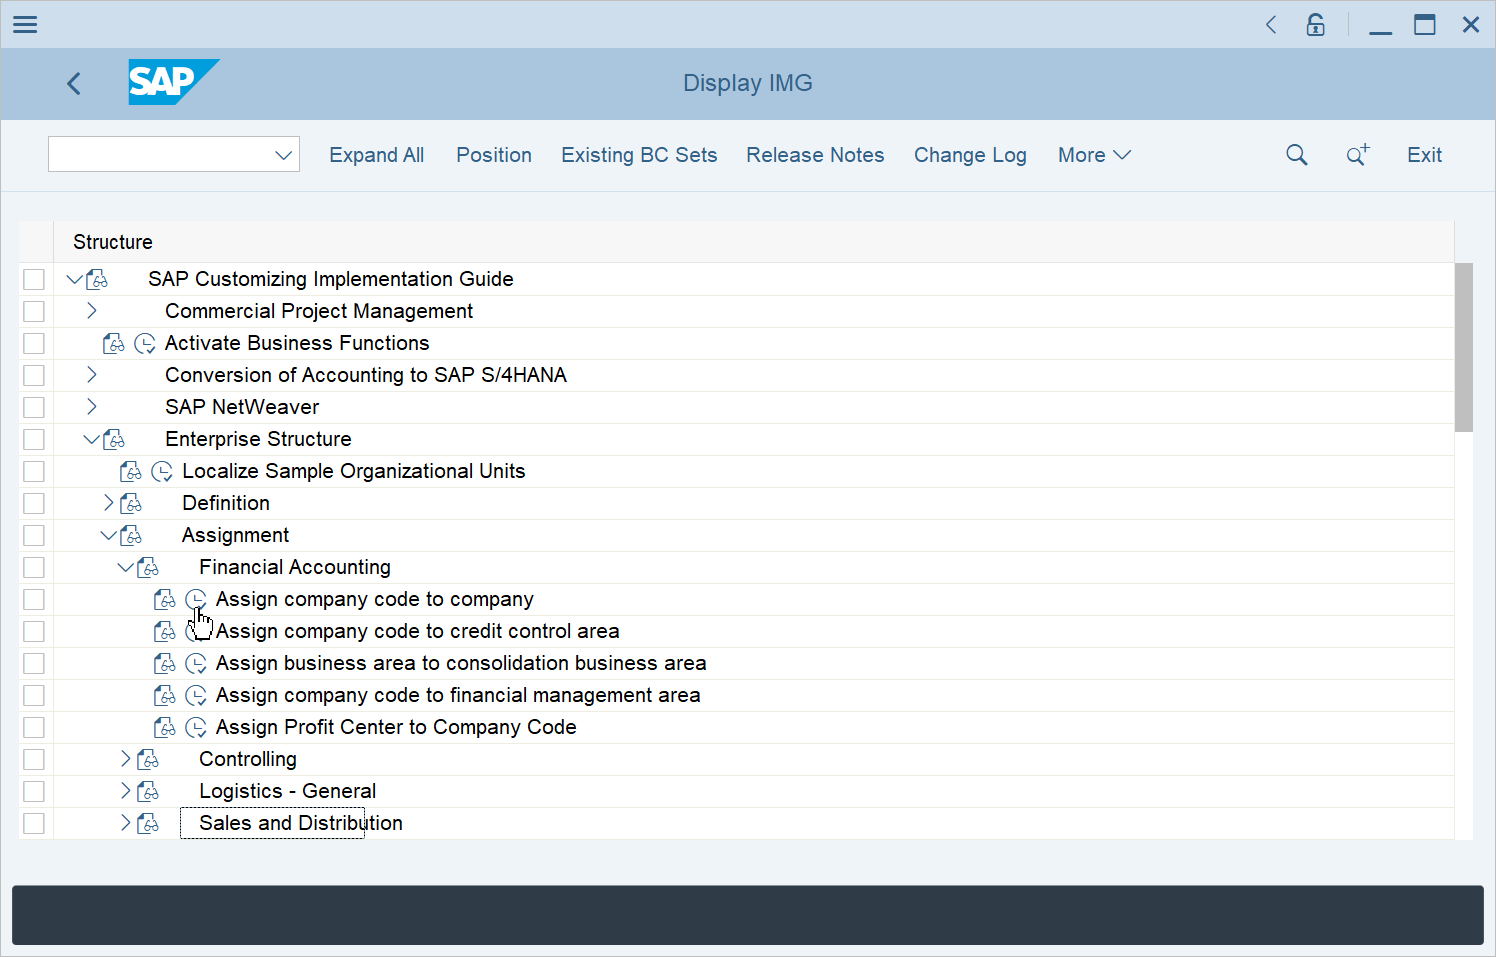 Assign company code to company in SAP FICO